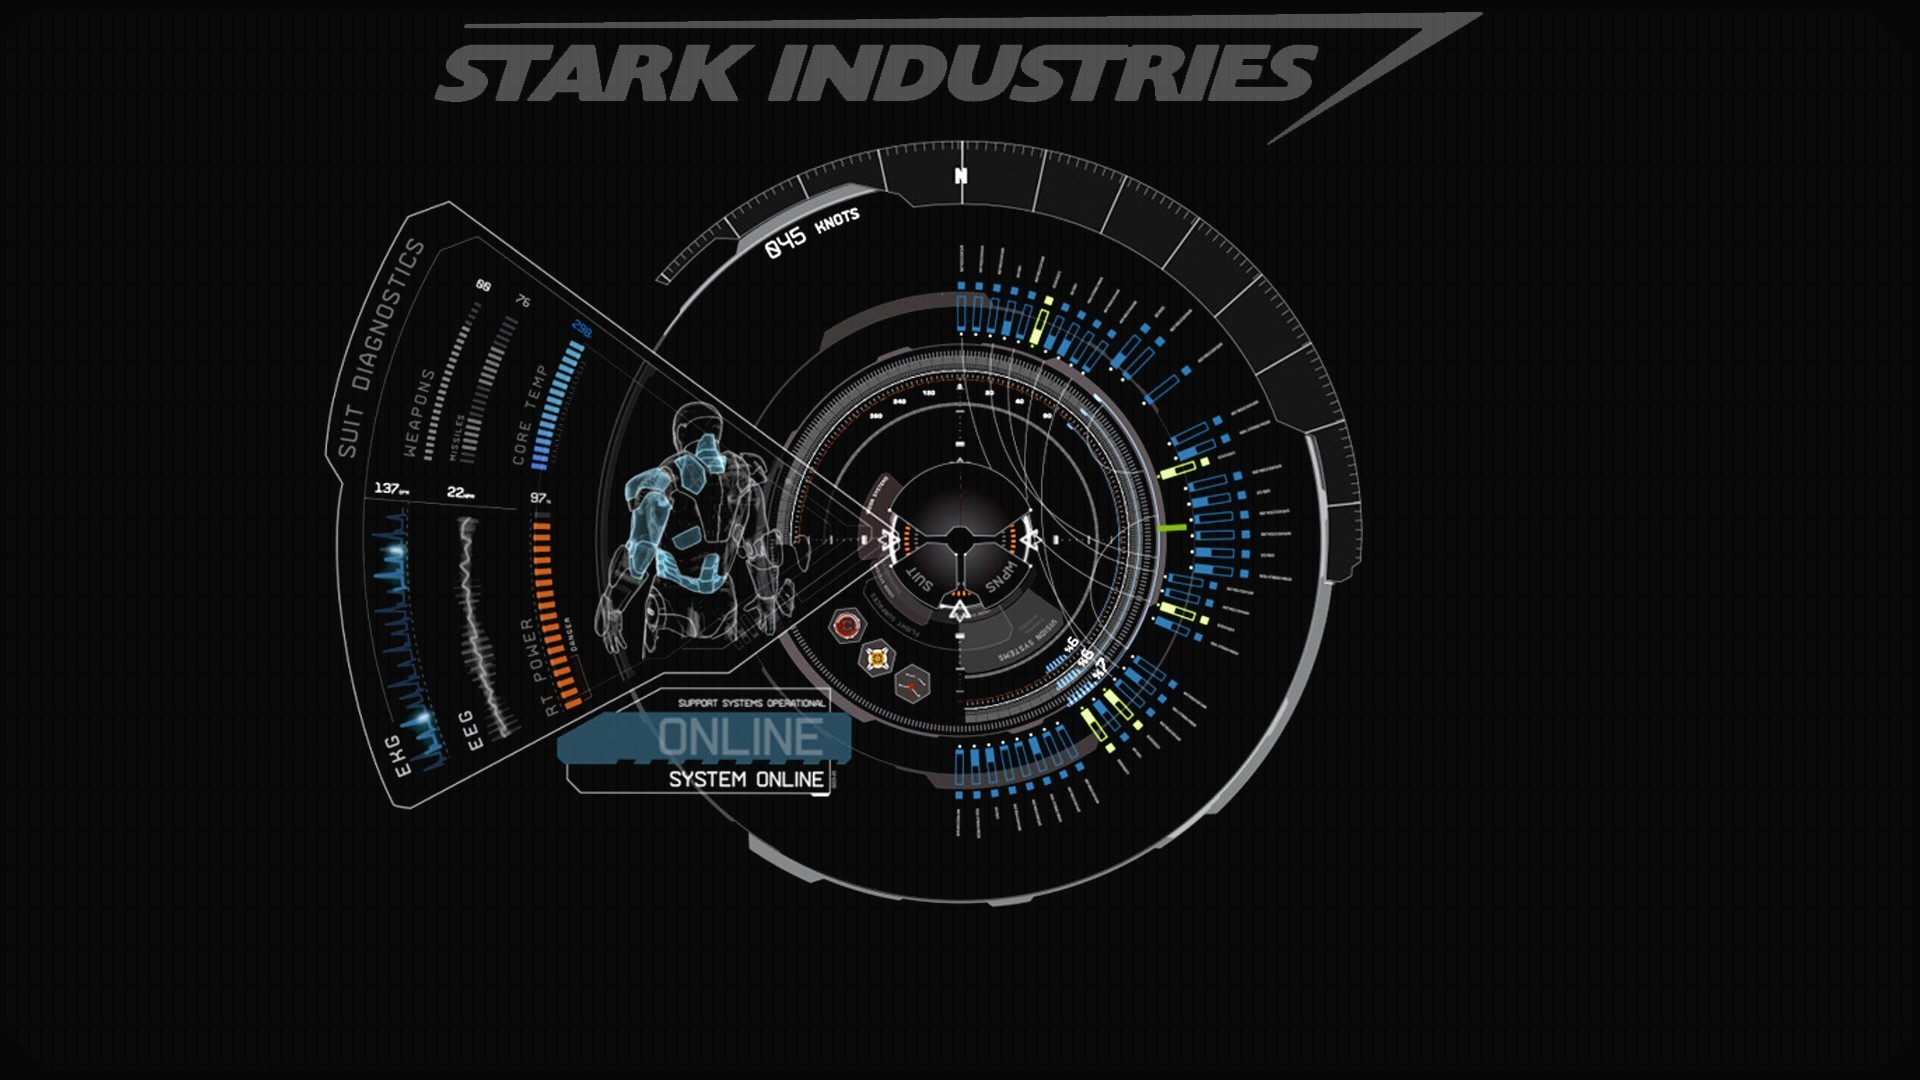 1920x1080 Stark Industries Wallpaper by TheInfamousTheft on DeviantArt Source ·  250126 377609 81856 320922